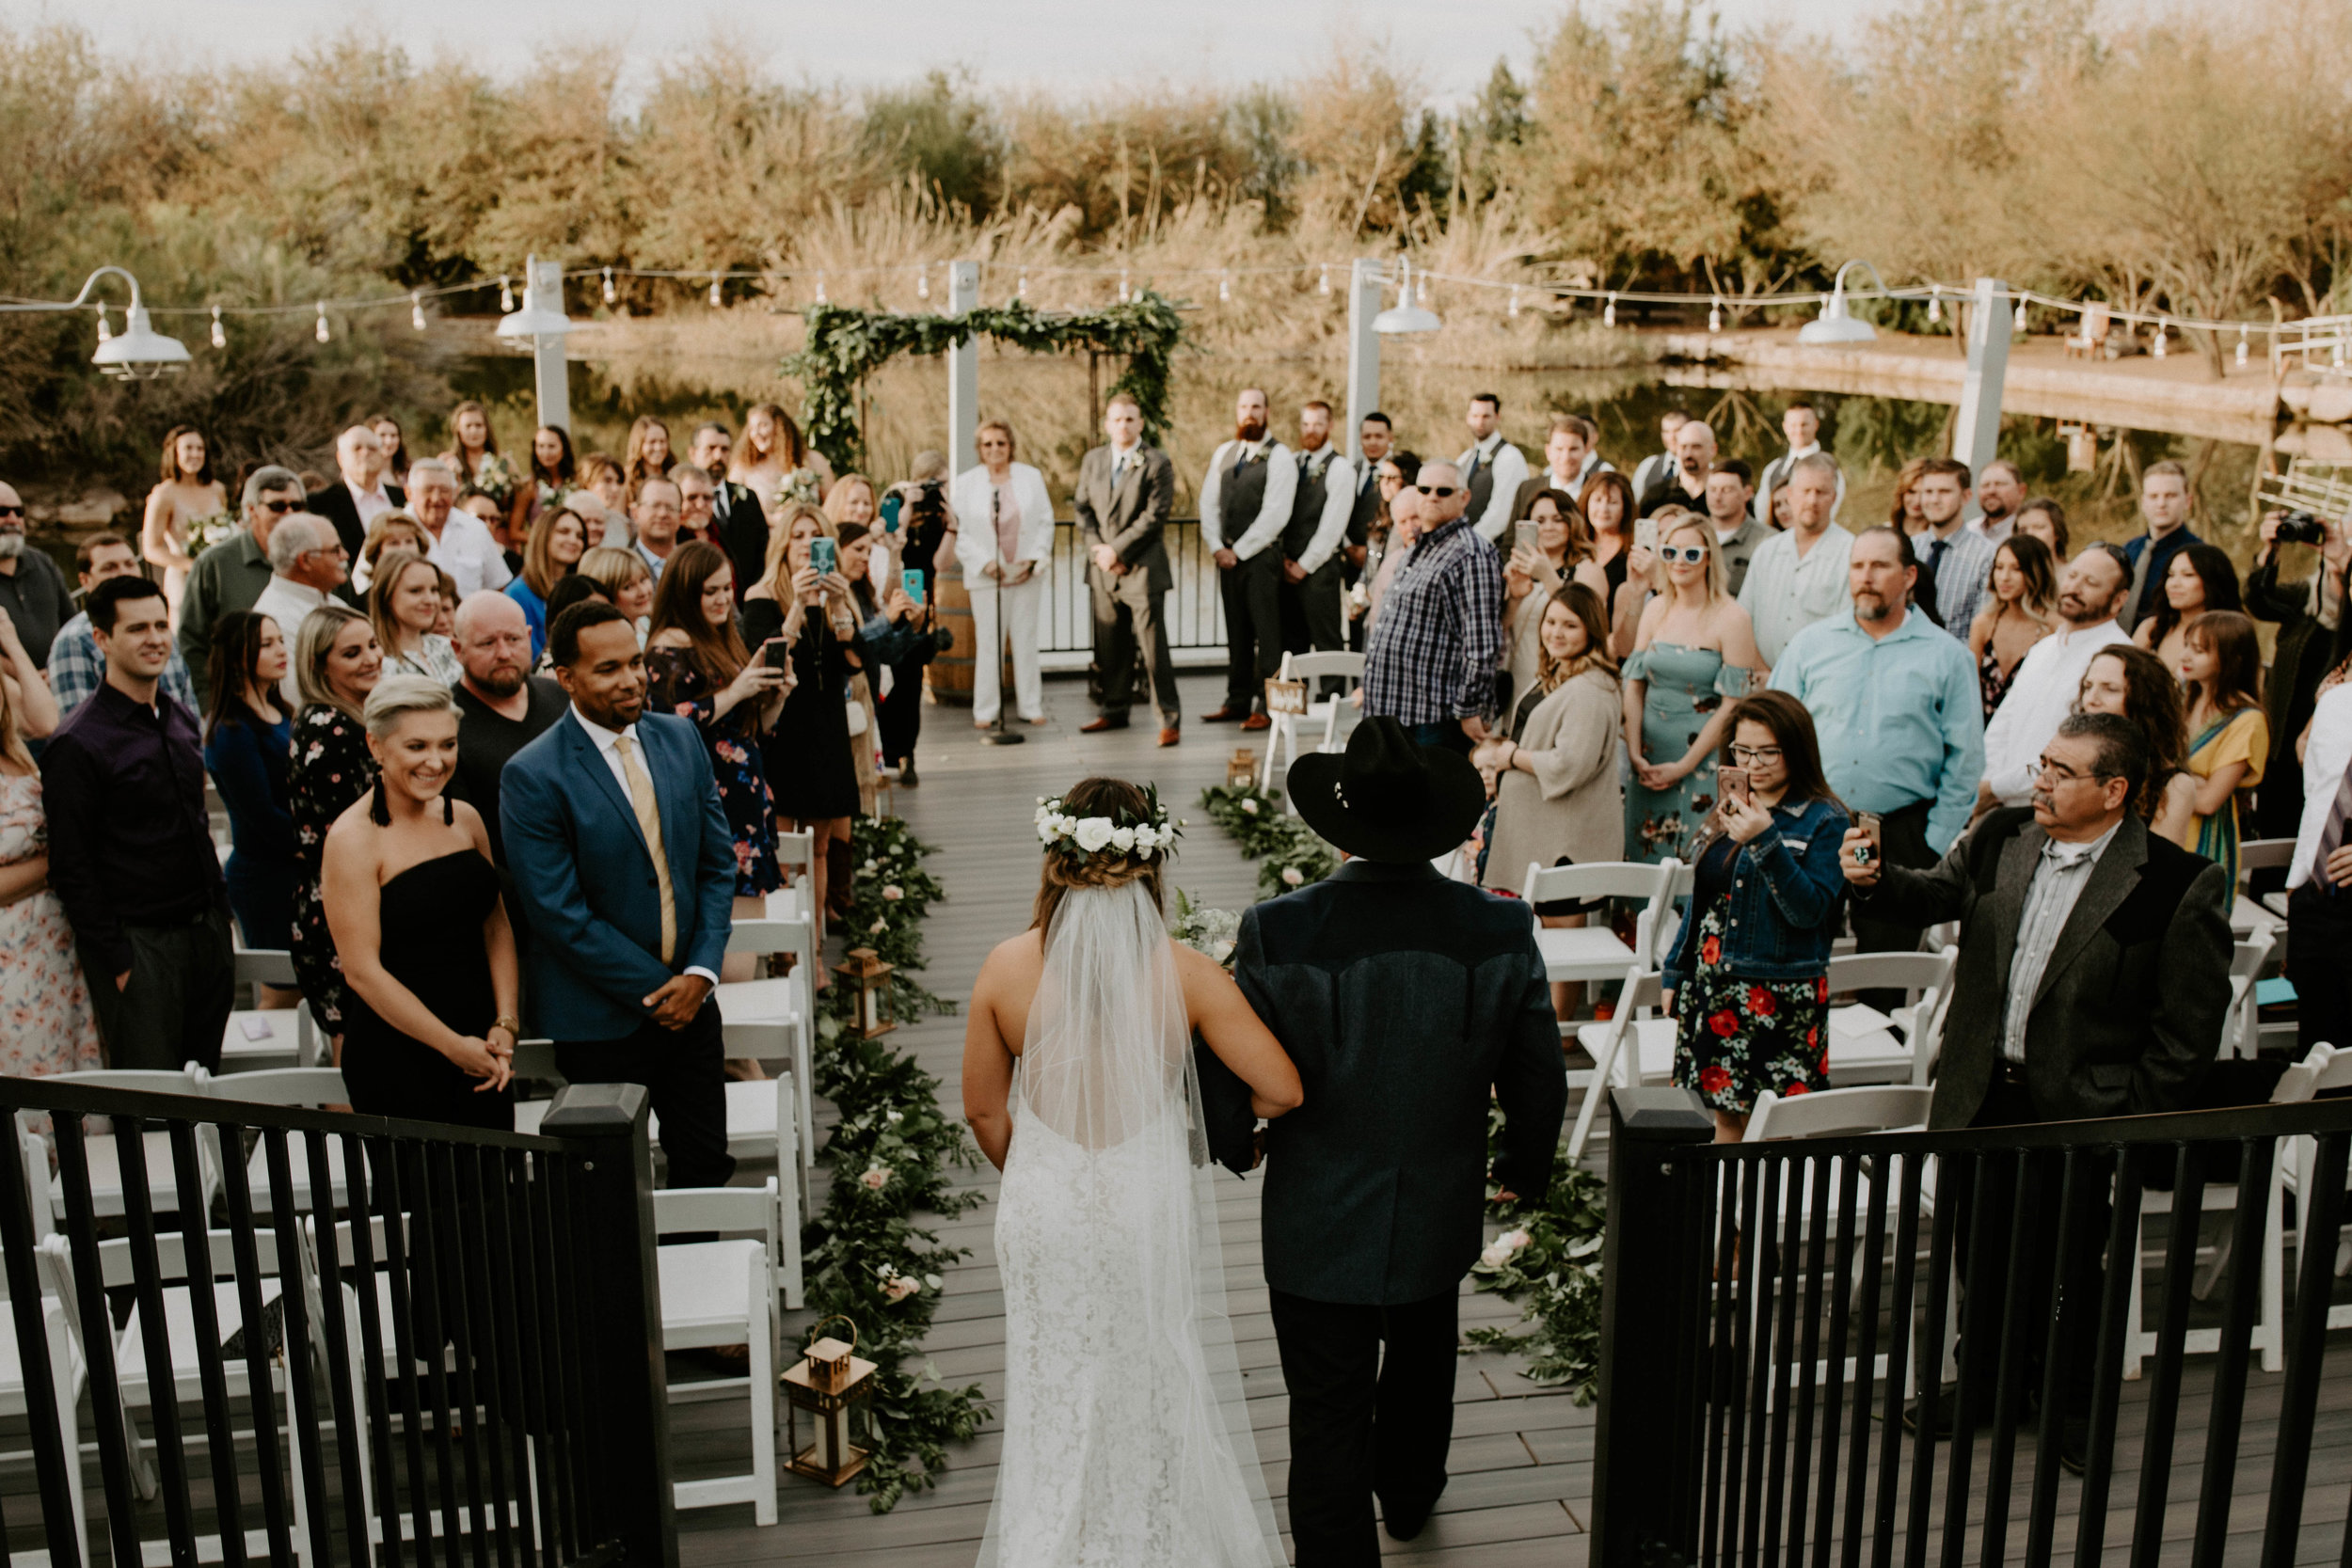 Boat dock ceremony space at Windmill Winery wedding venue in Arizona